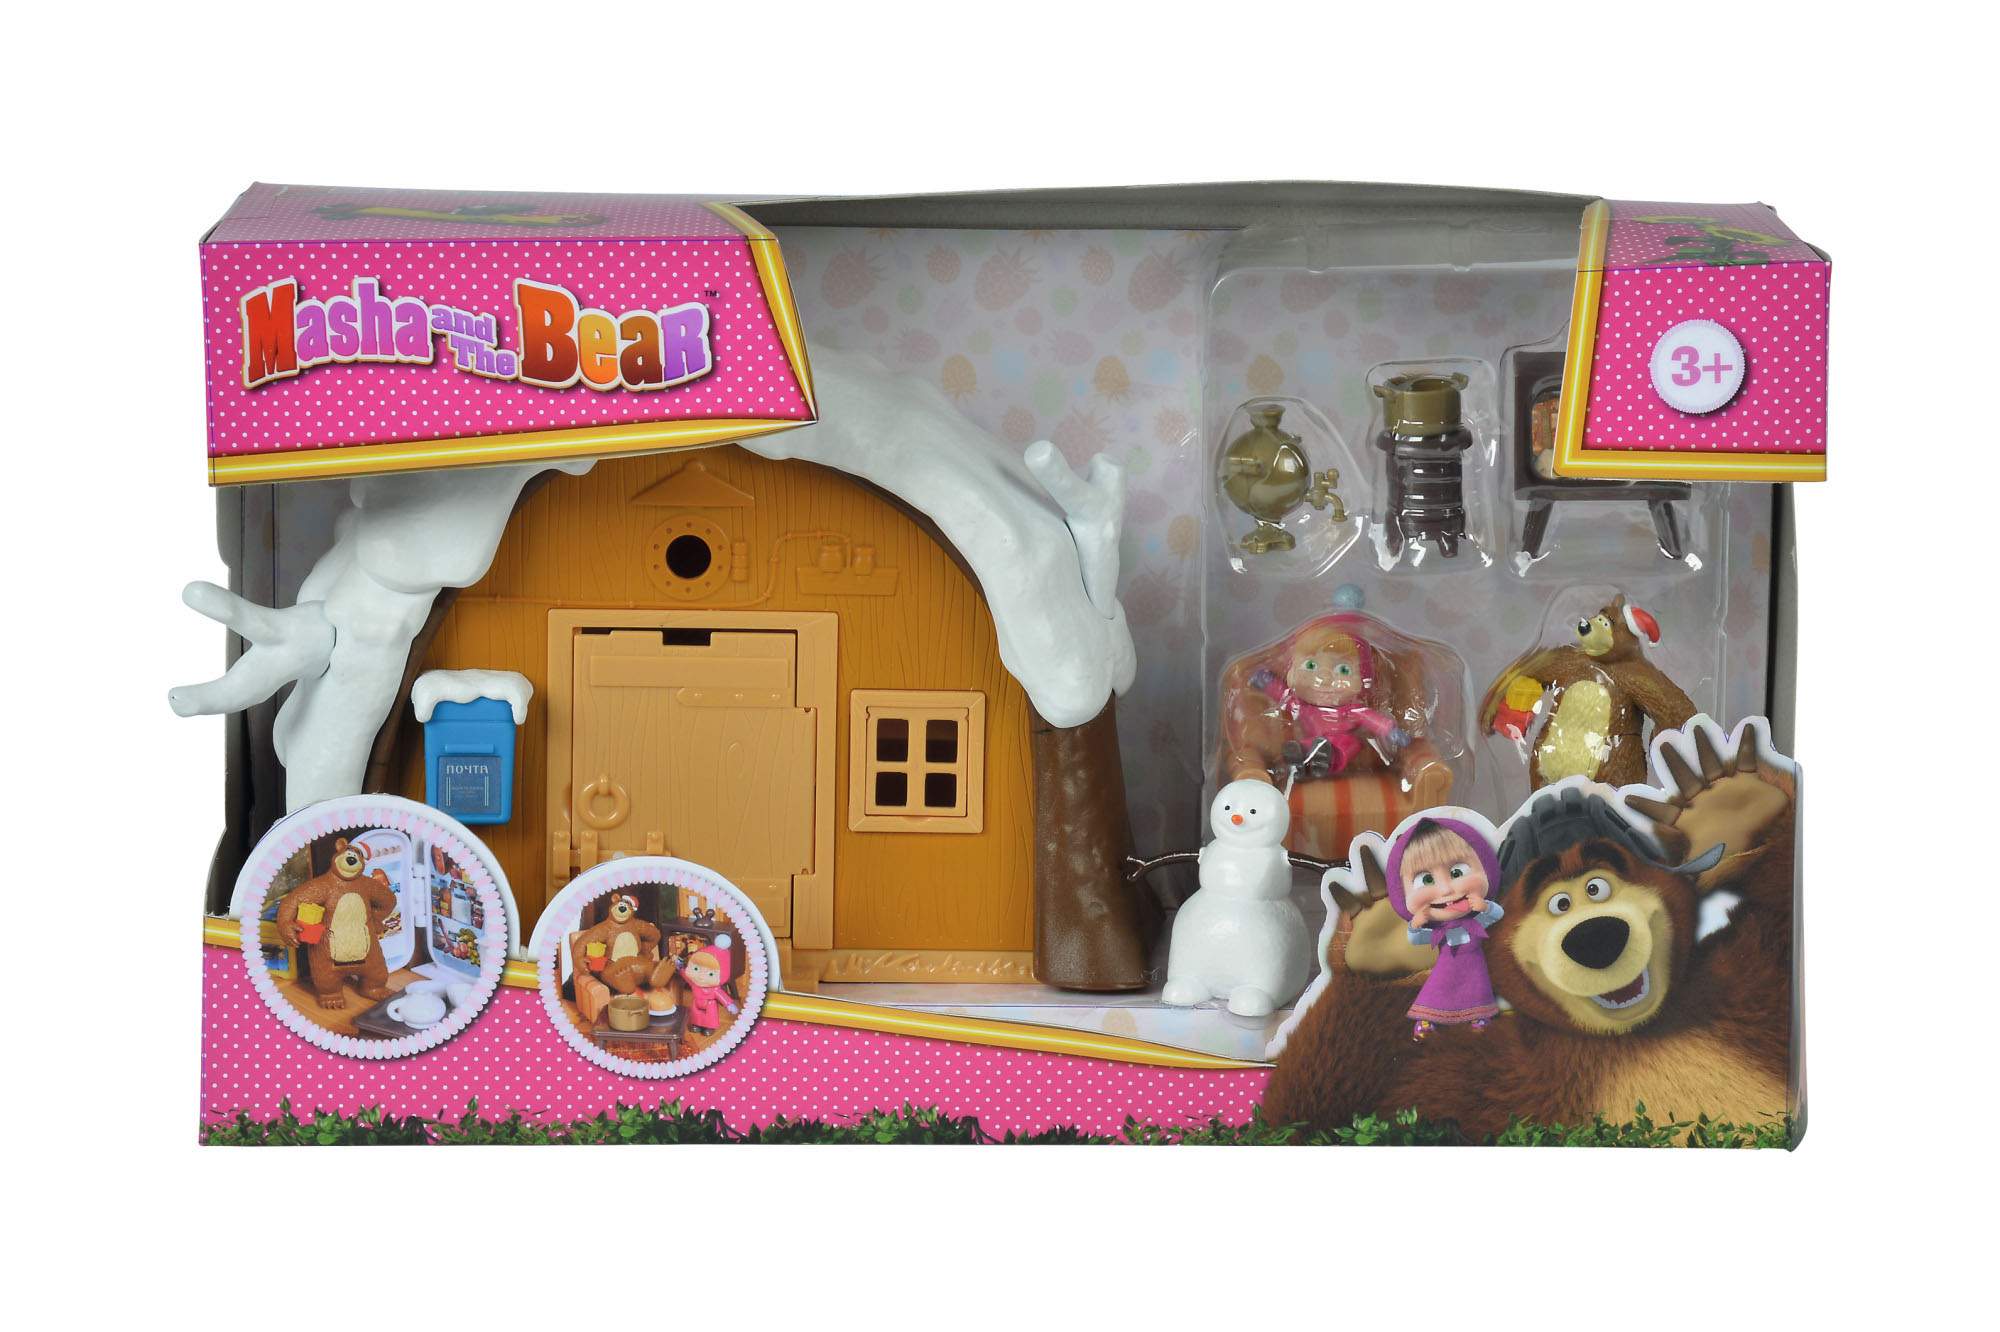 109301023 masha and the bear bear winter house playset. Black Bedroom Furniture Sets. Home Design Ideas